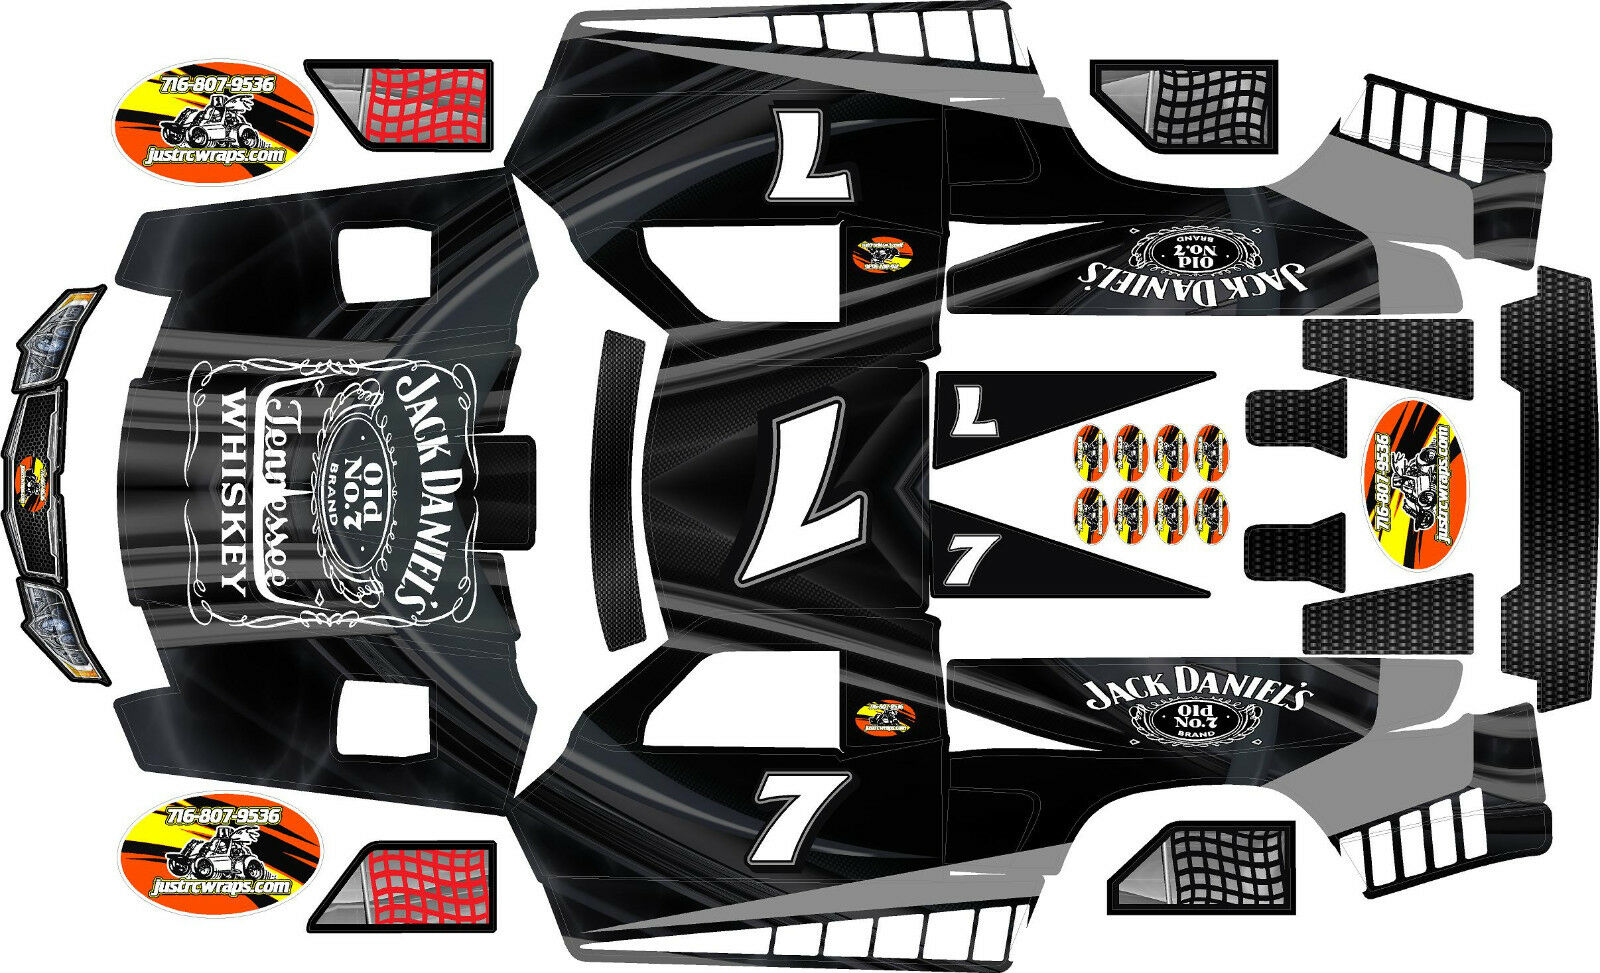 Hpi Baja 5t And 5sc Black Jack Theme Body Wrap Decals Stickers Skins Dji Mavic Pro Usaf Shark 1 Of 1only 3 Available